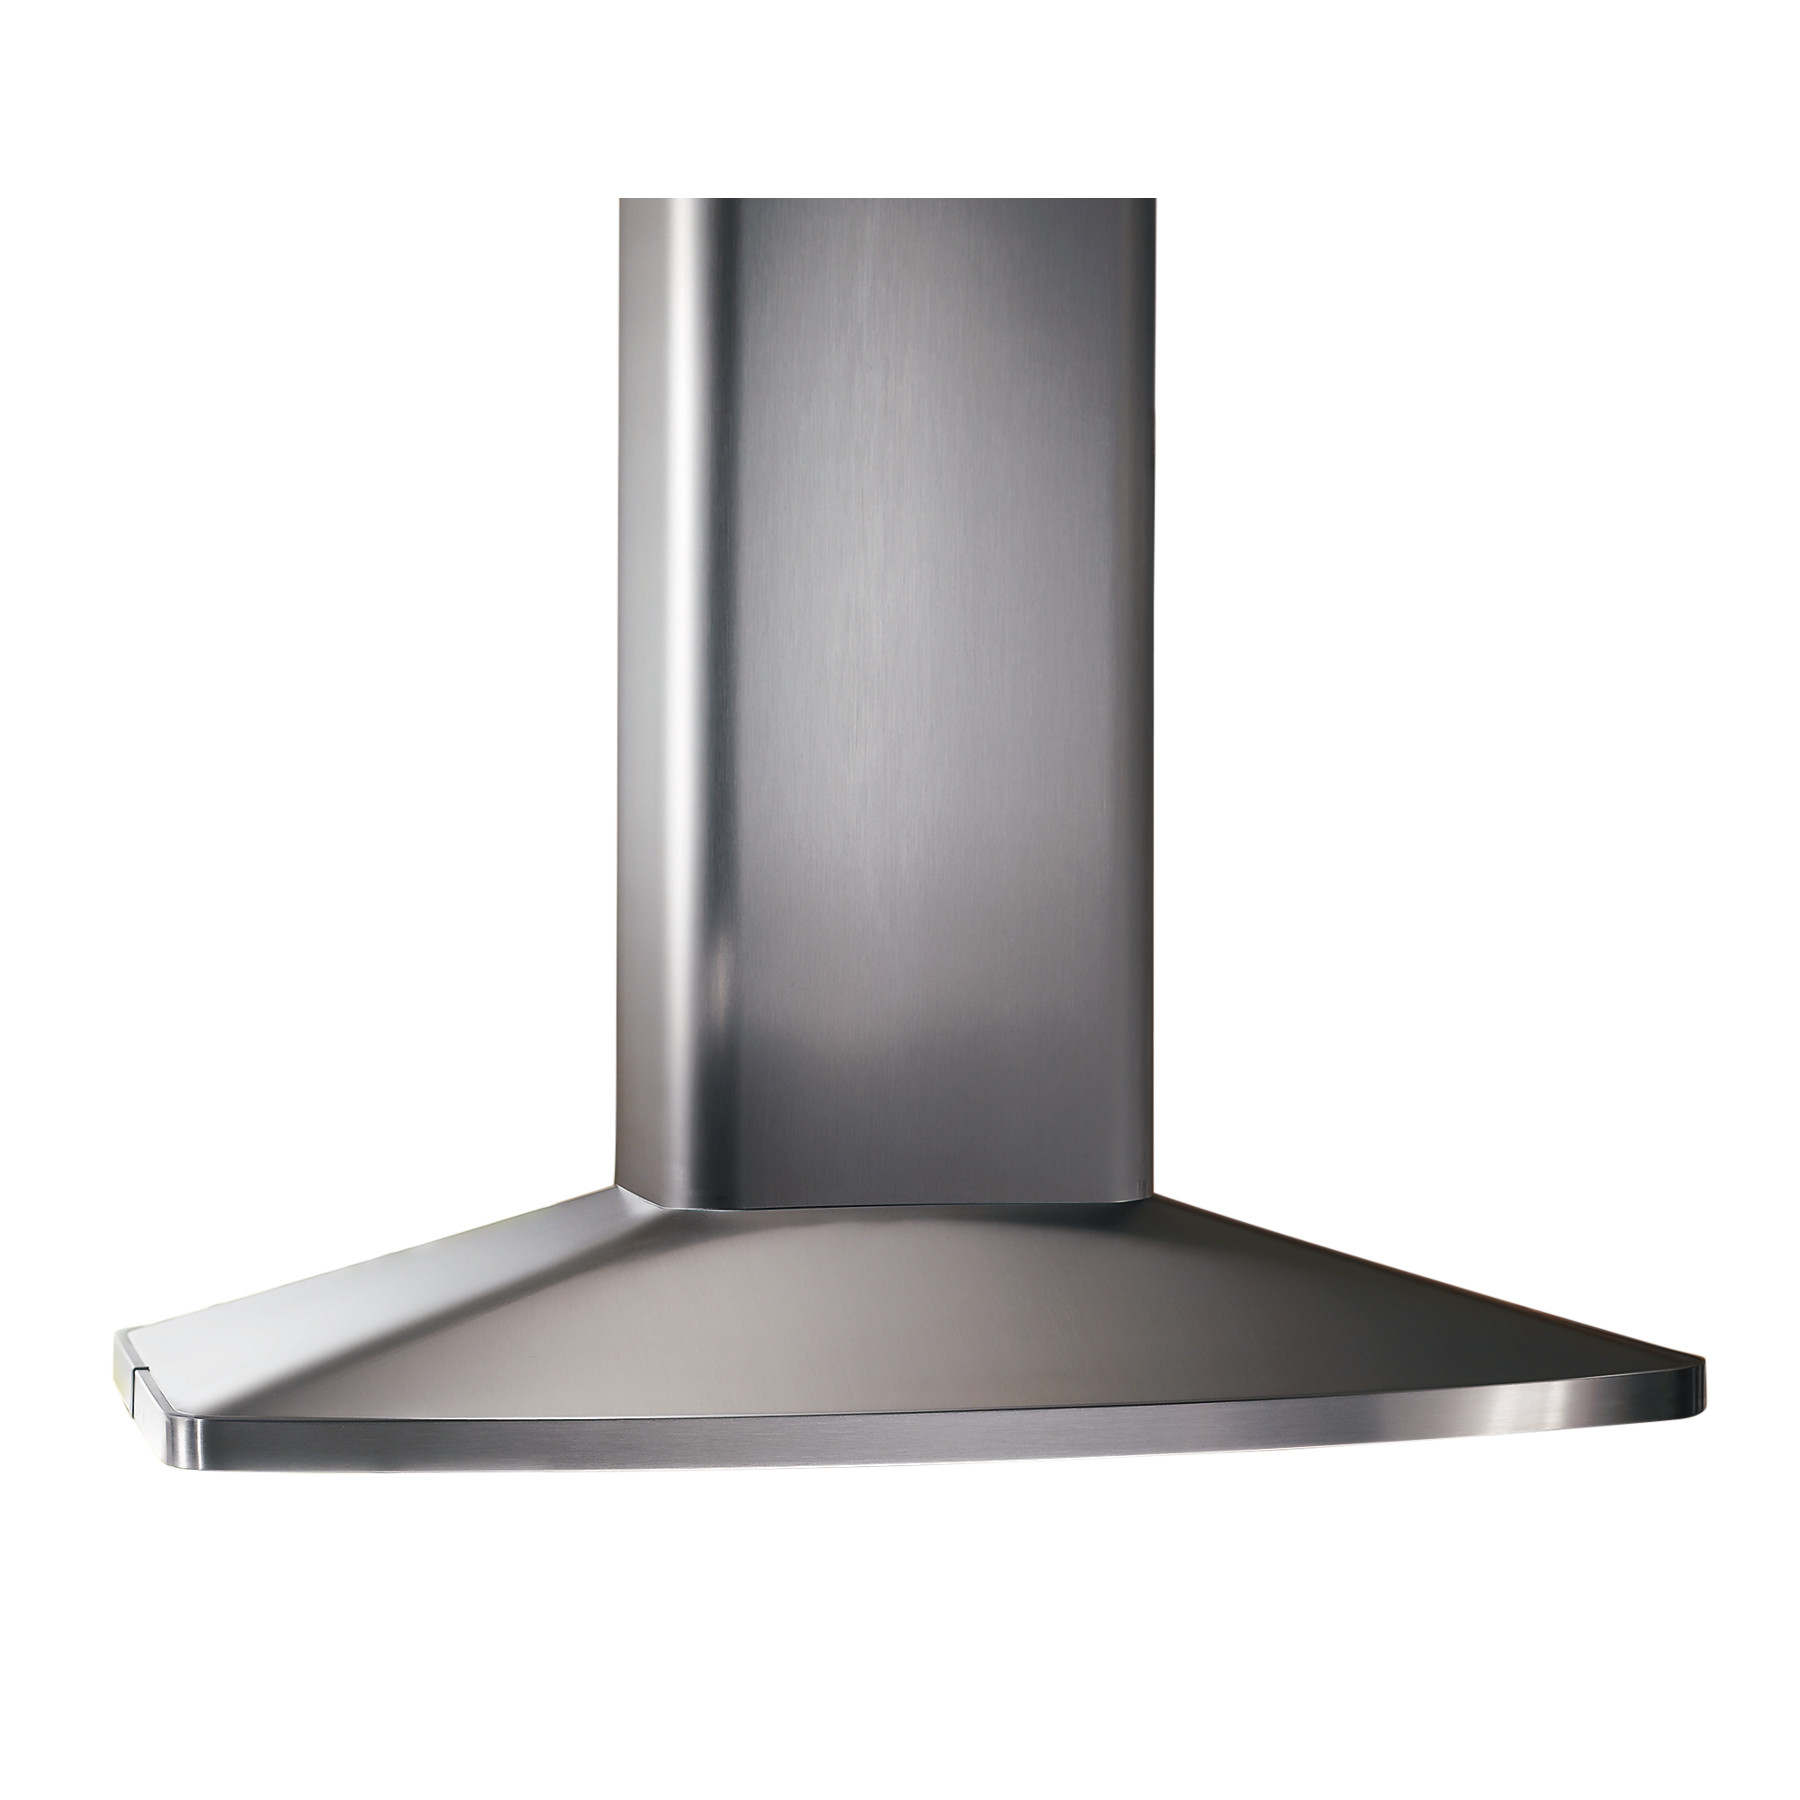 Broan® 27-9/16-Inch X 35-7/16-Inch Convertible Island Chimney Range Hood, 480 CFM, Stainless Steel